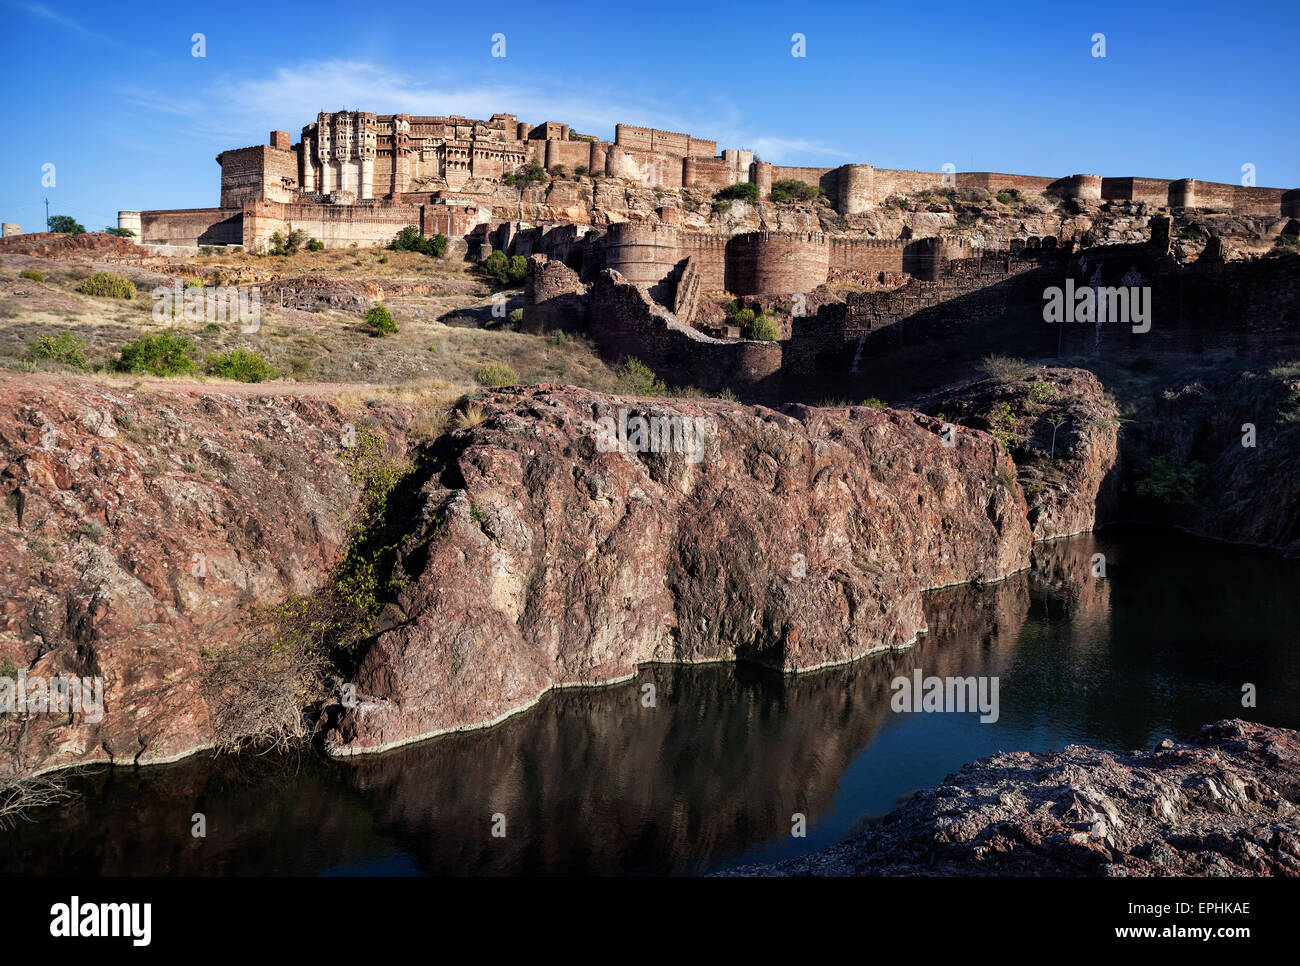 Mehrangarh fort on the hill at blue sky in Jodhpur, Rajasthan, India - Stock Image